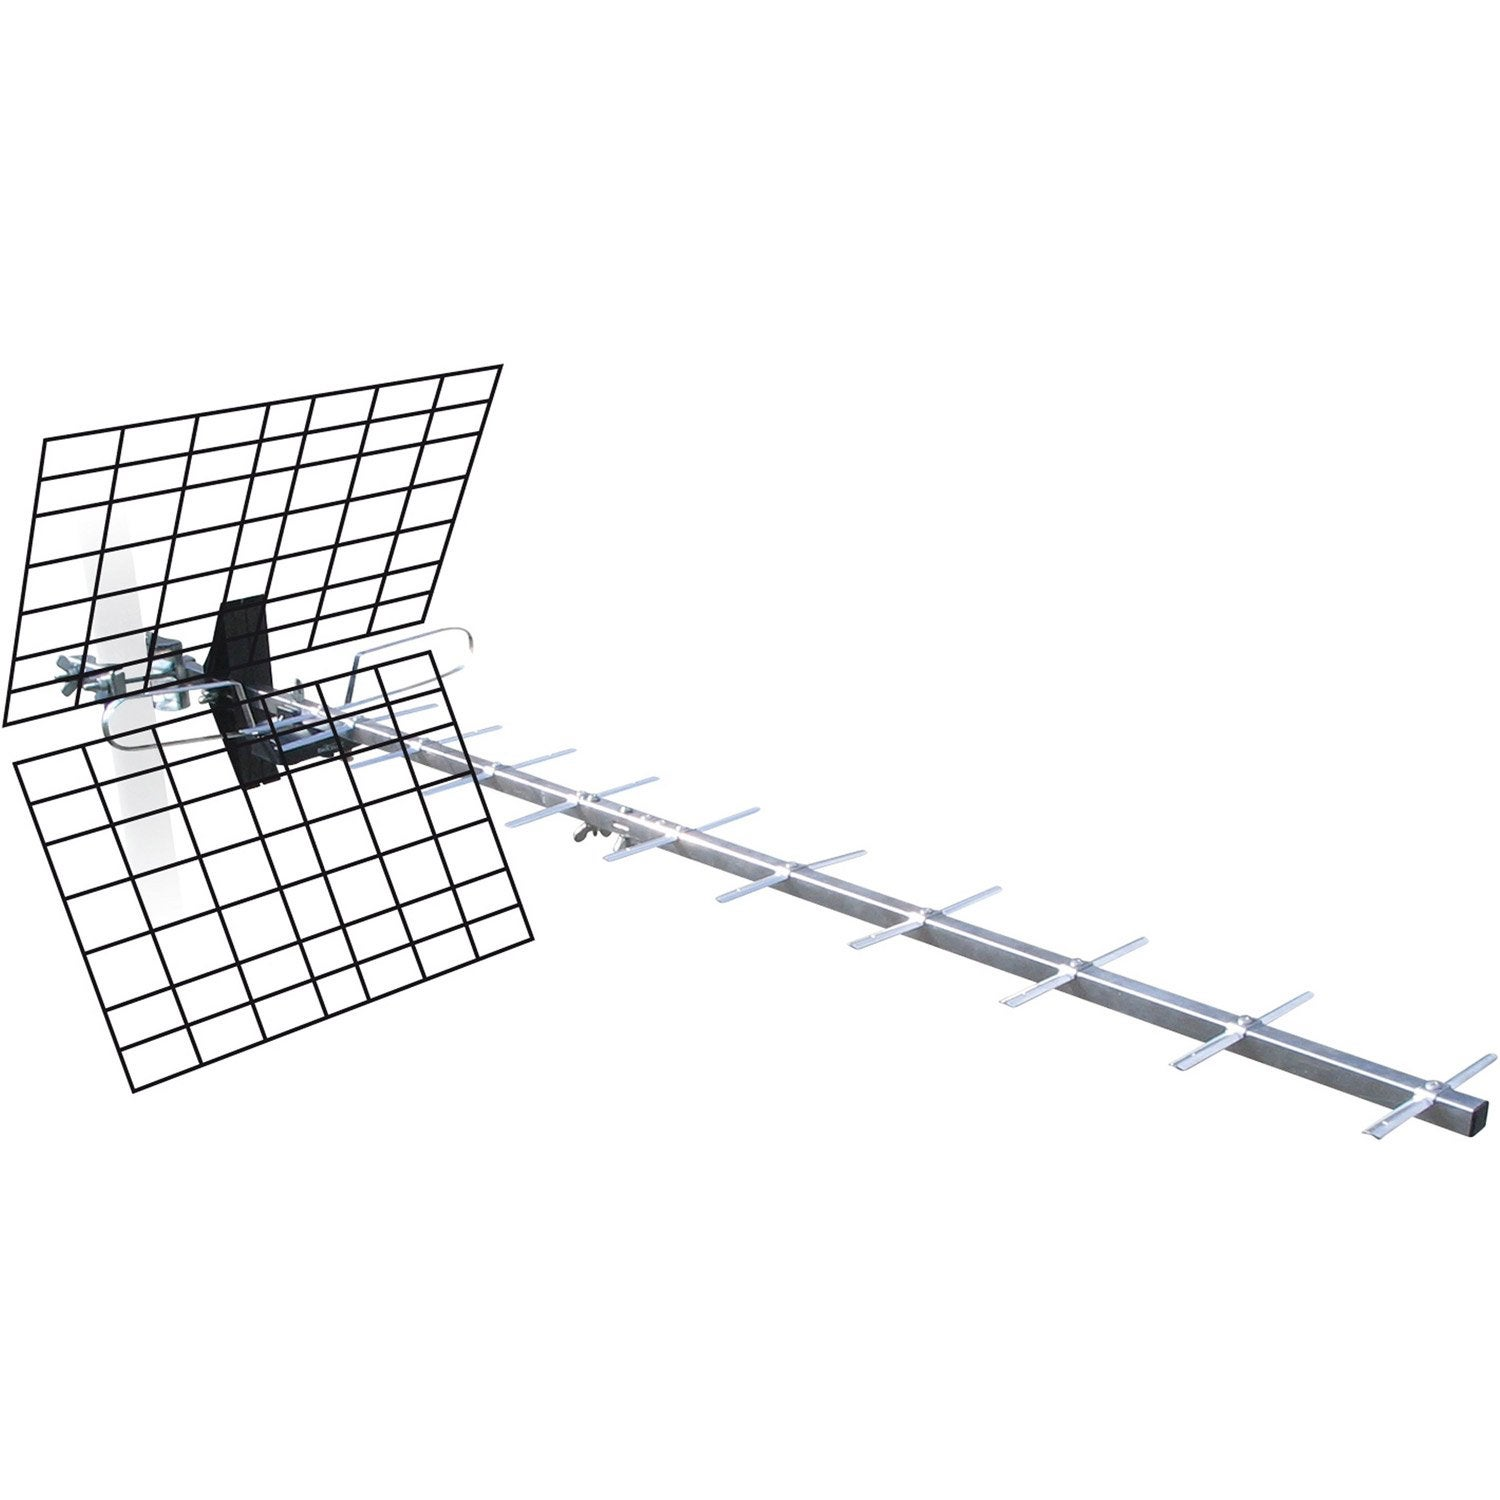 Antenne tv ext rieure tnt hd metronic 20 db leroy merlin for Orientation antenne tnt exterieur